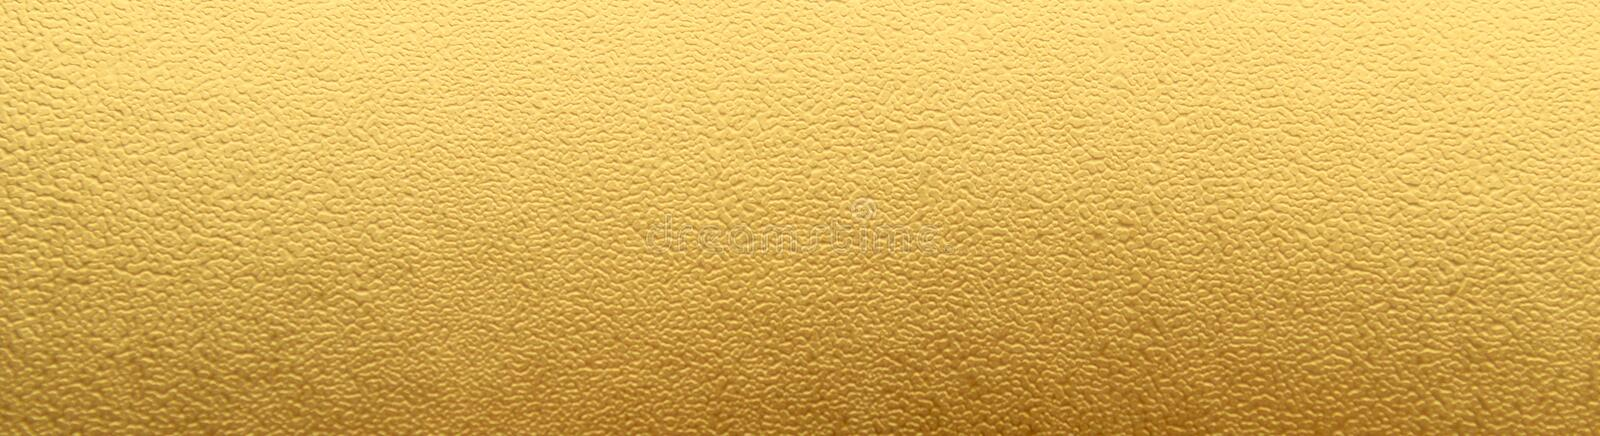 Gold paper texture background. gold wall background royalty free stock image